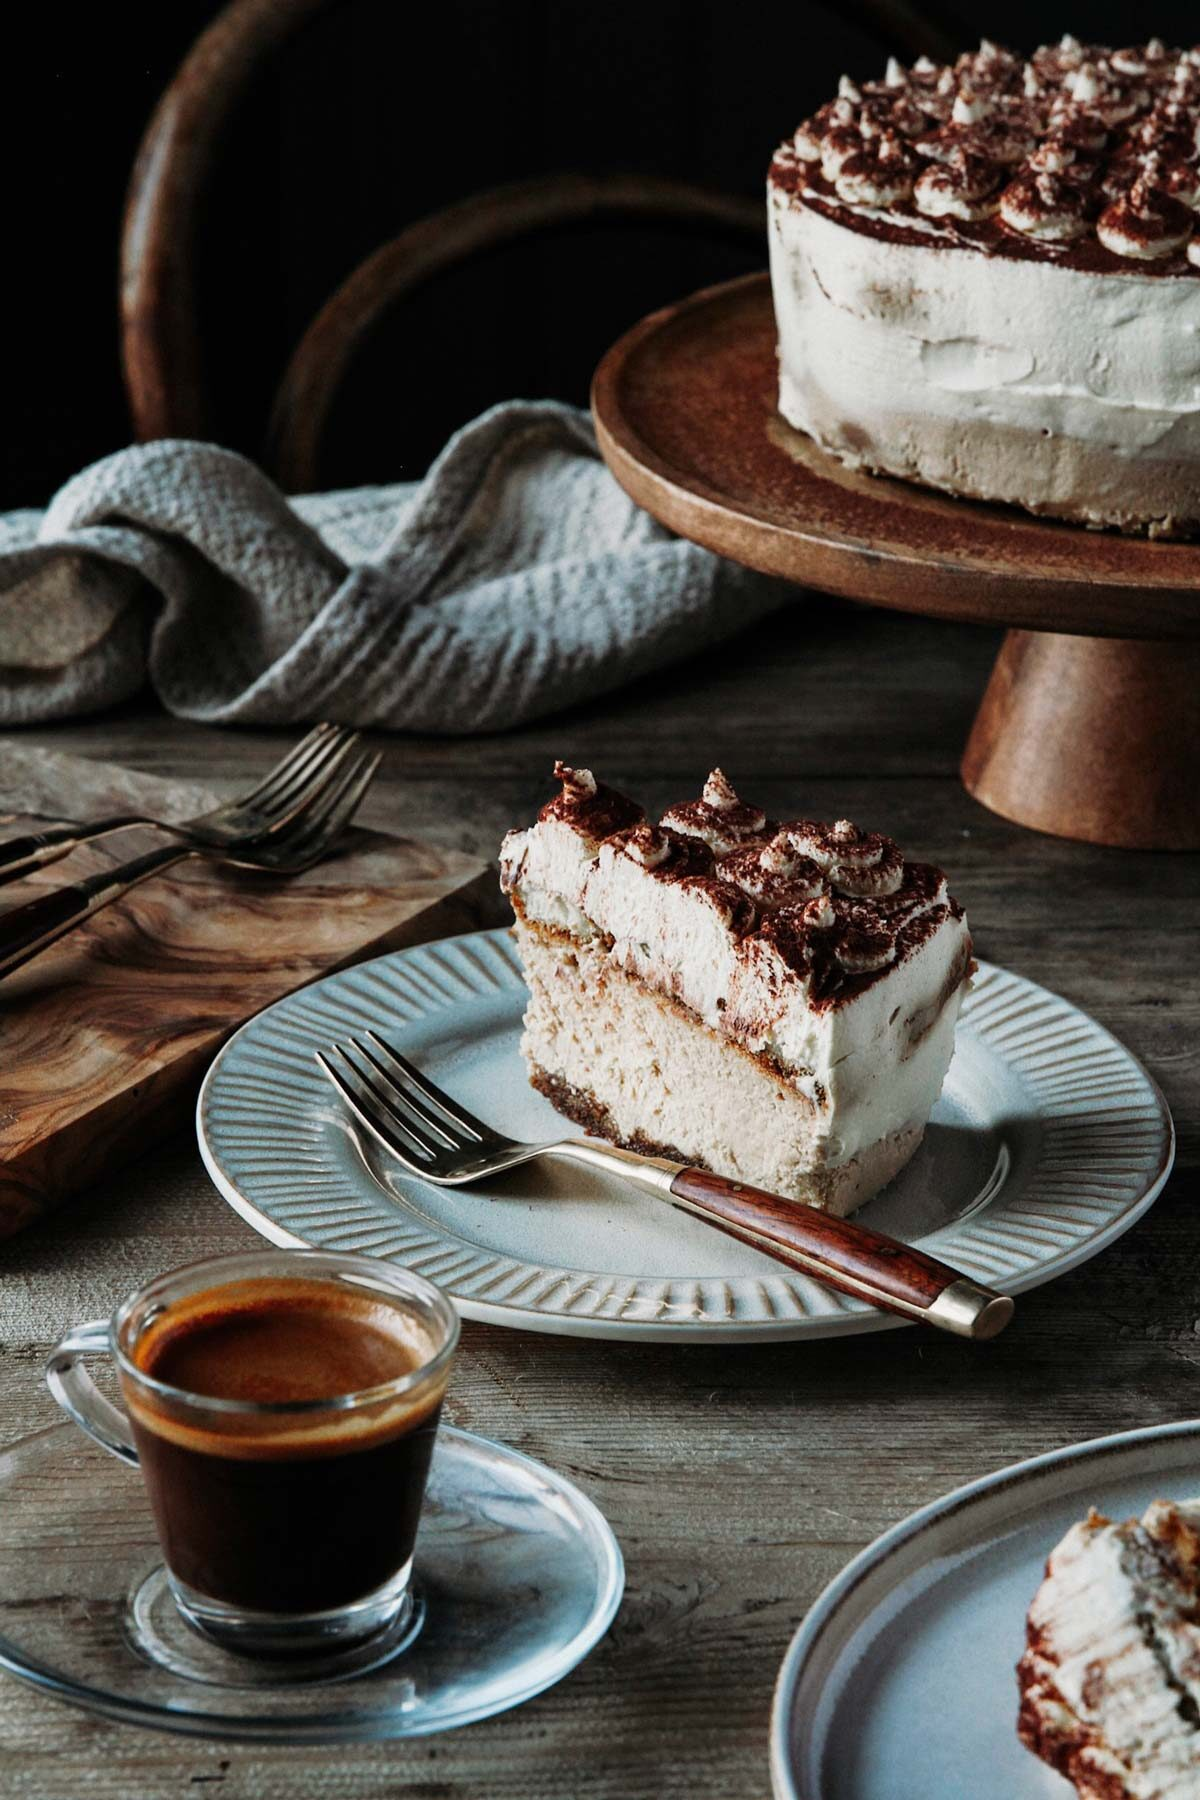 A slice of tiramisu cheesecake sitting on the plate with espresso coffee and more cake